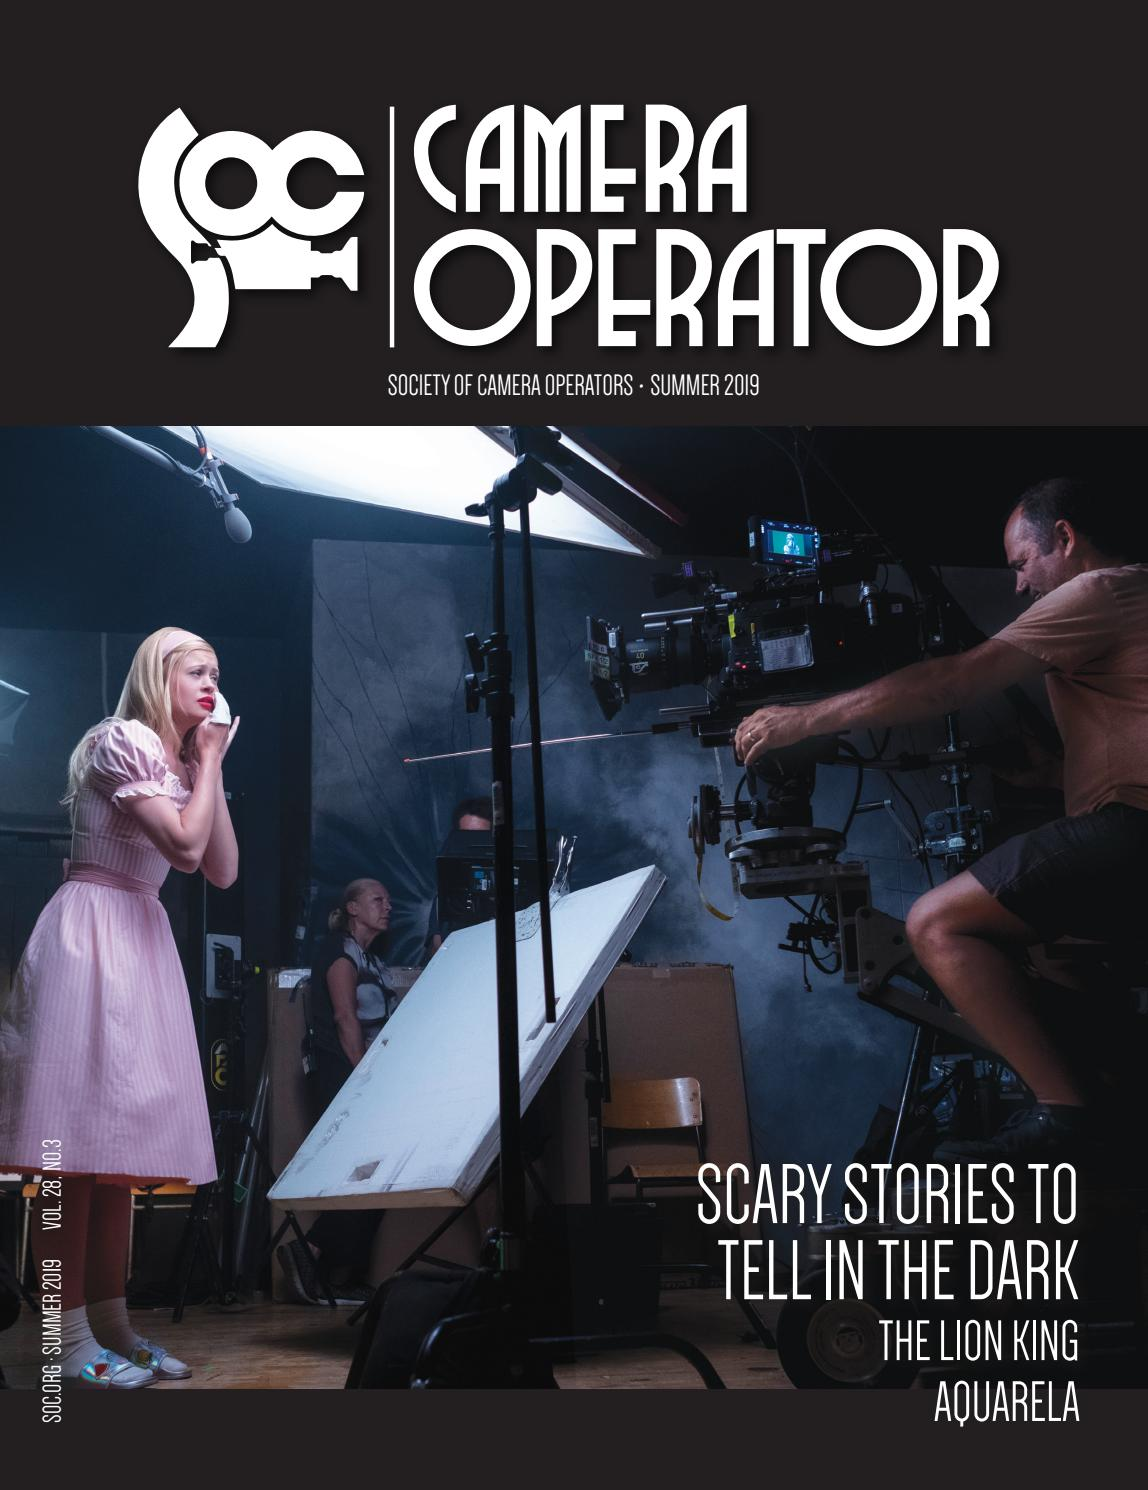 Camera Operator Summer 2019 By Society Of Camera Operators Issuu Vanessa /драма/ ванесса 1977 (16+). camera operator summer 2019 by society